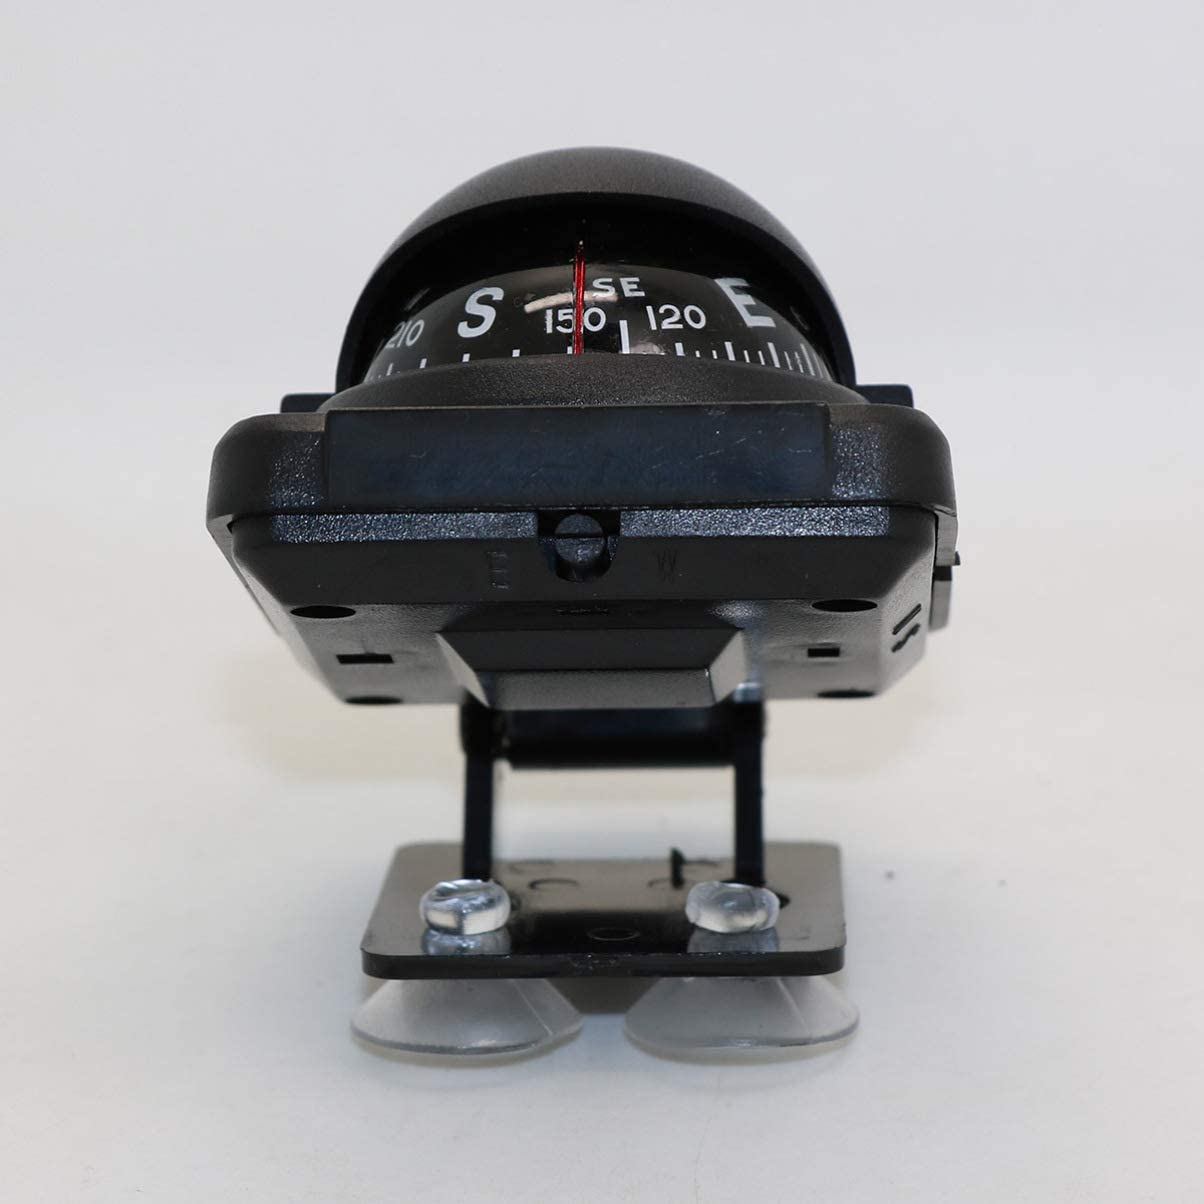 nonbranded 1 Pc Car Compass Adjustable Direction Pointing Dashboard Guide Ball Navigation for Boat Auto Vehicle Car